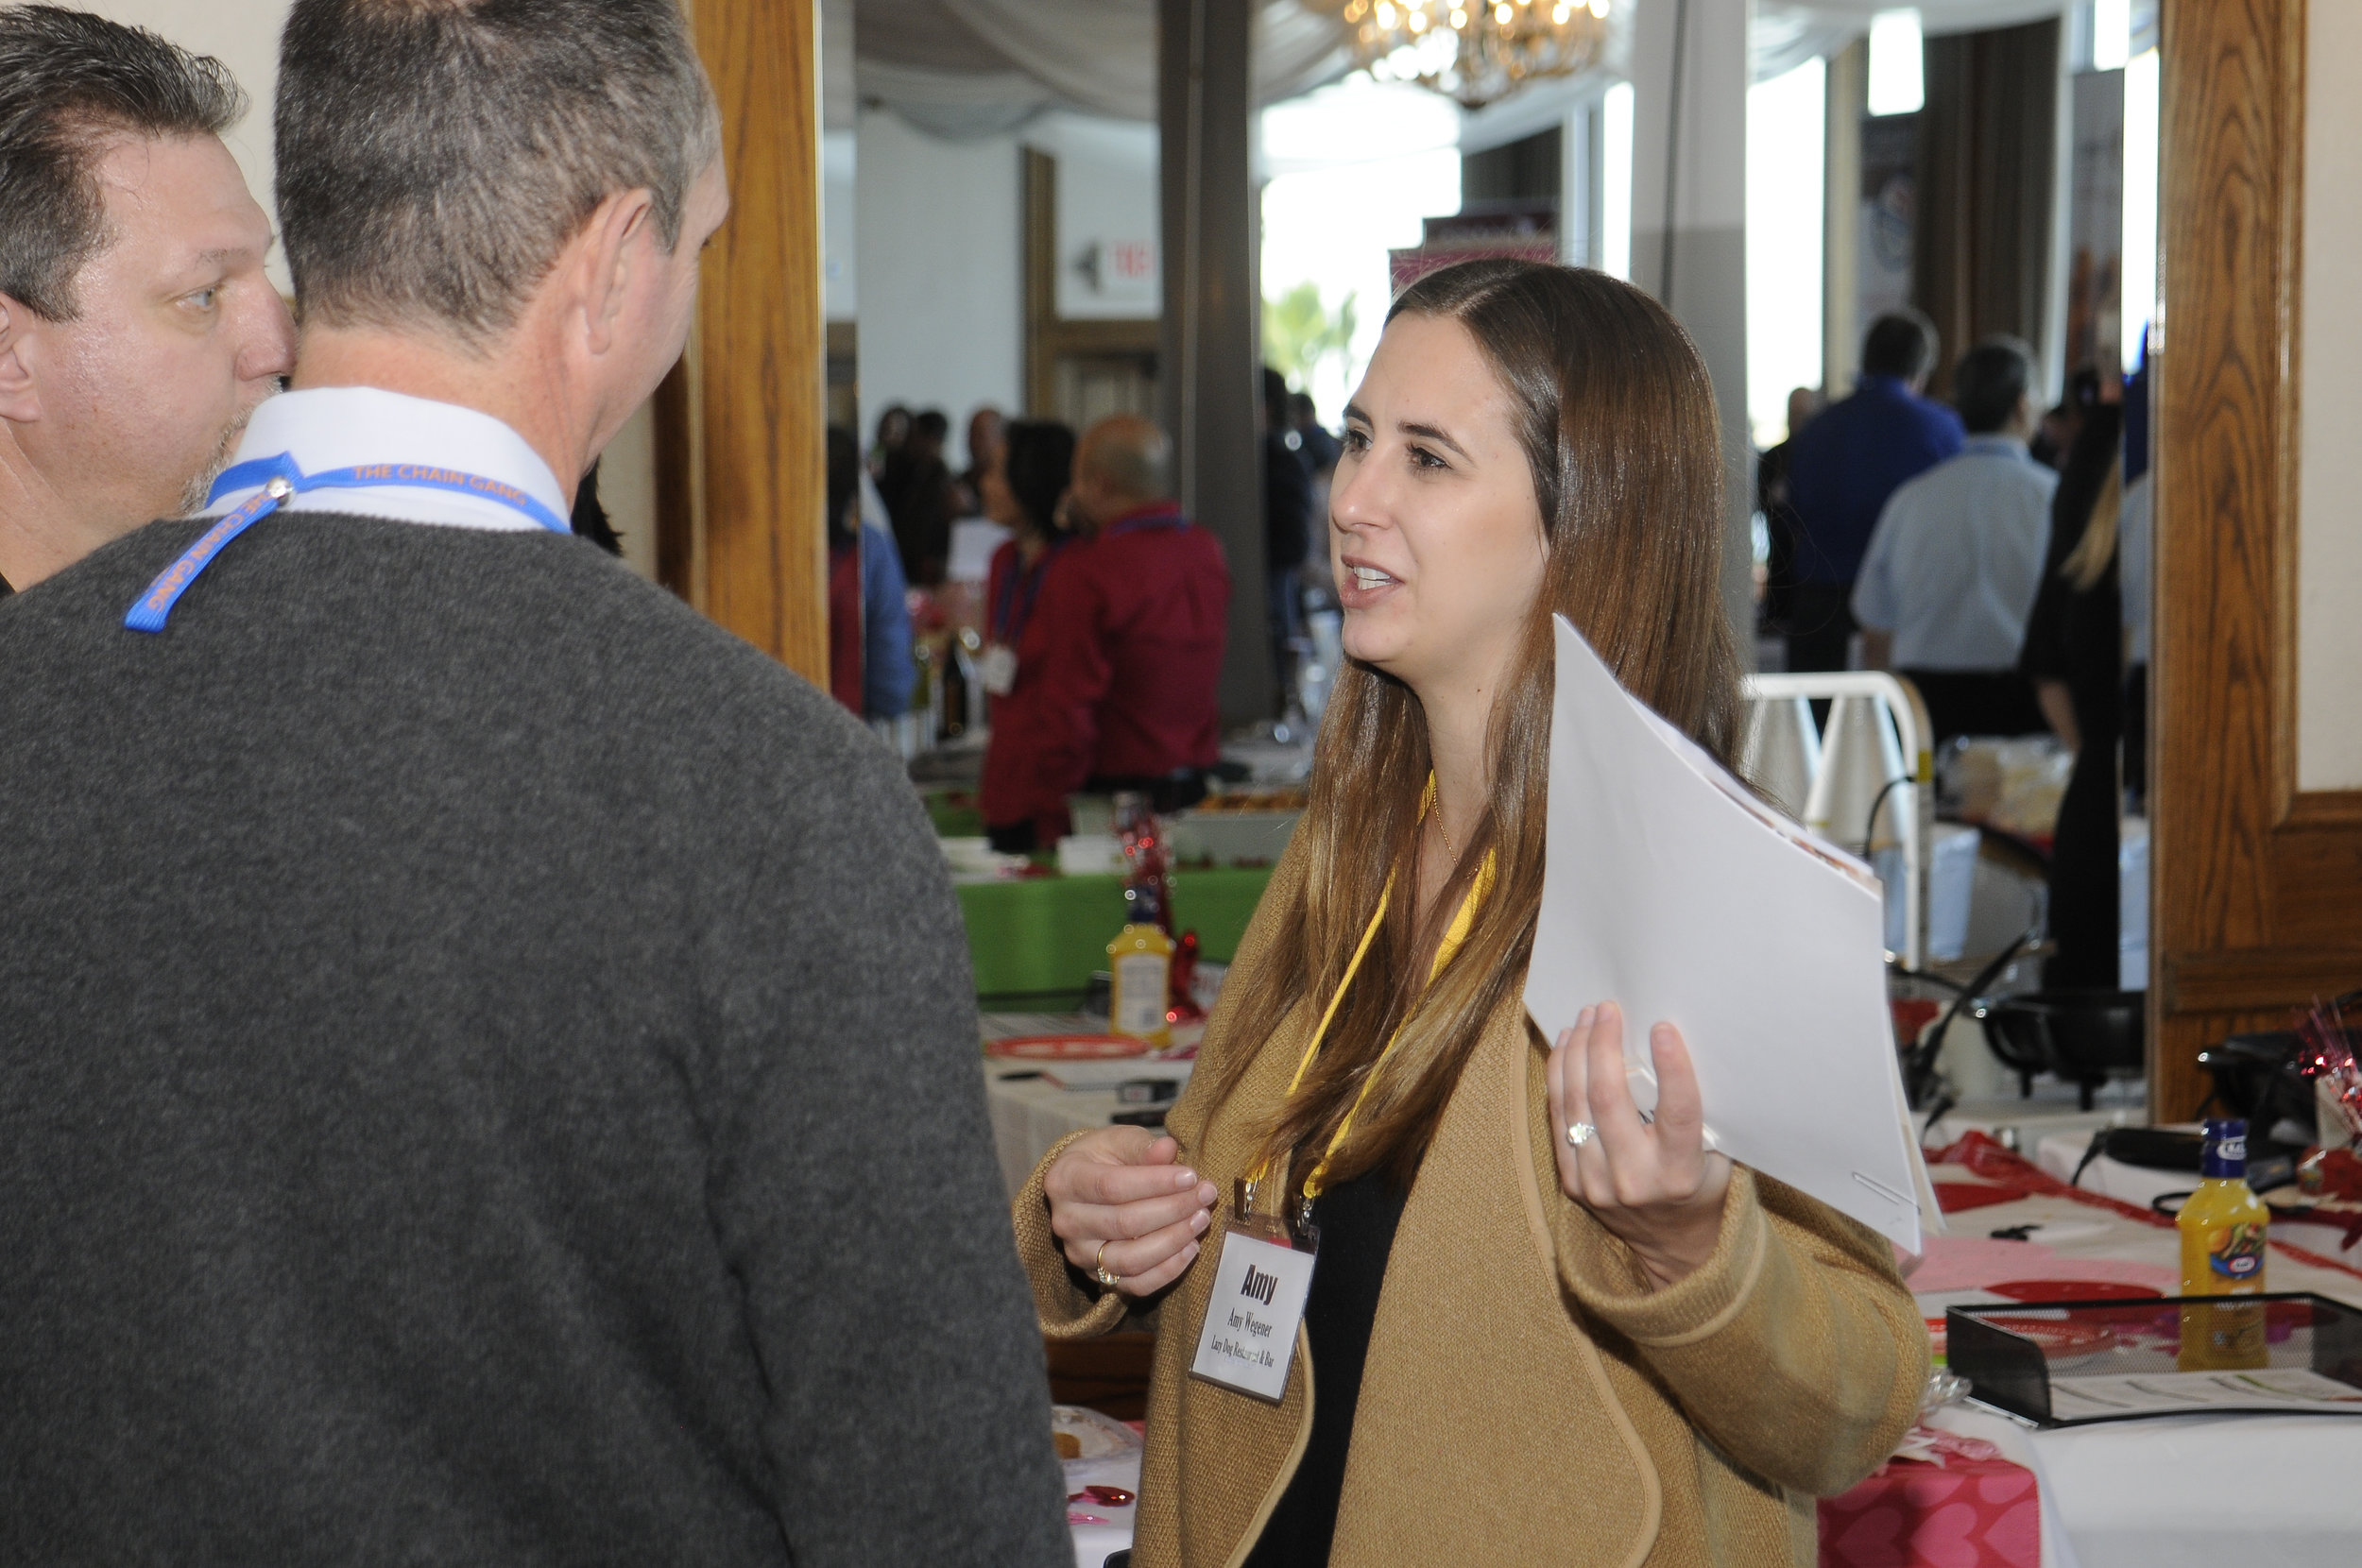 069 Market Vision Event at The Reef in Long Beach 02-05-19.jpg